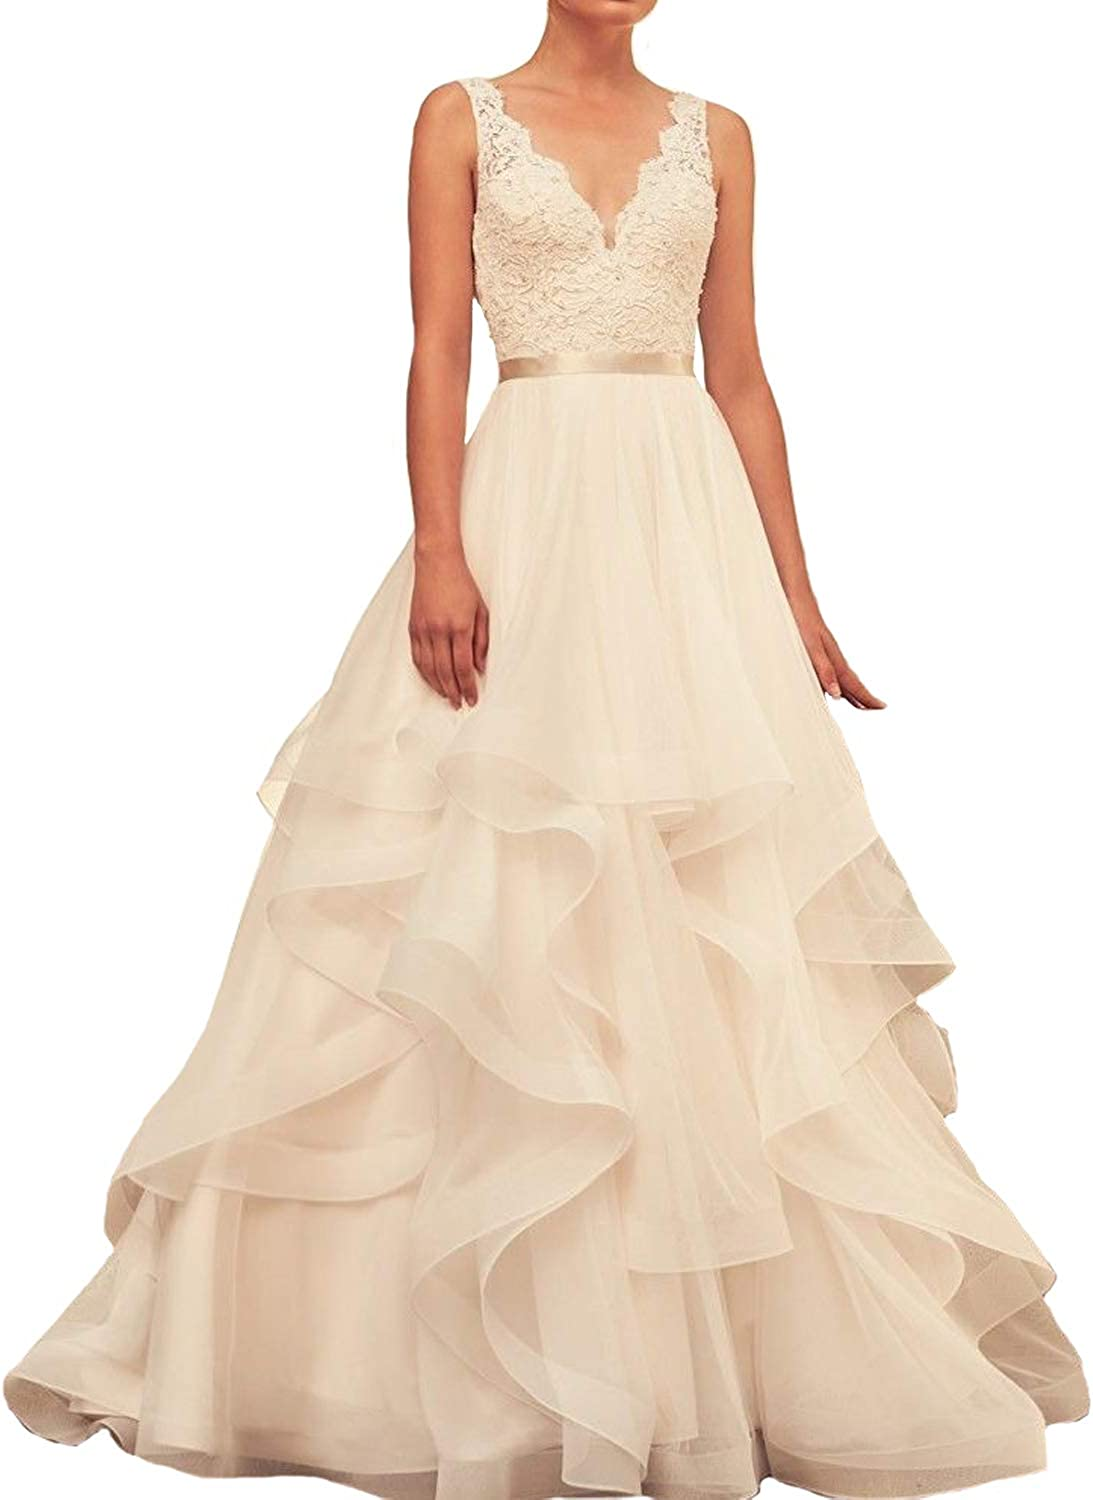 Fair Lady Sheer Neck Lace Wedding Dress Tulle Ball Gown Bridal Gowns Wedding Dresses for Bride